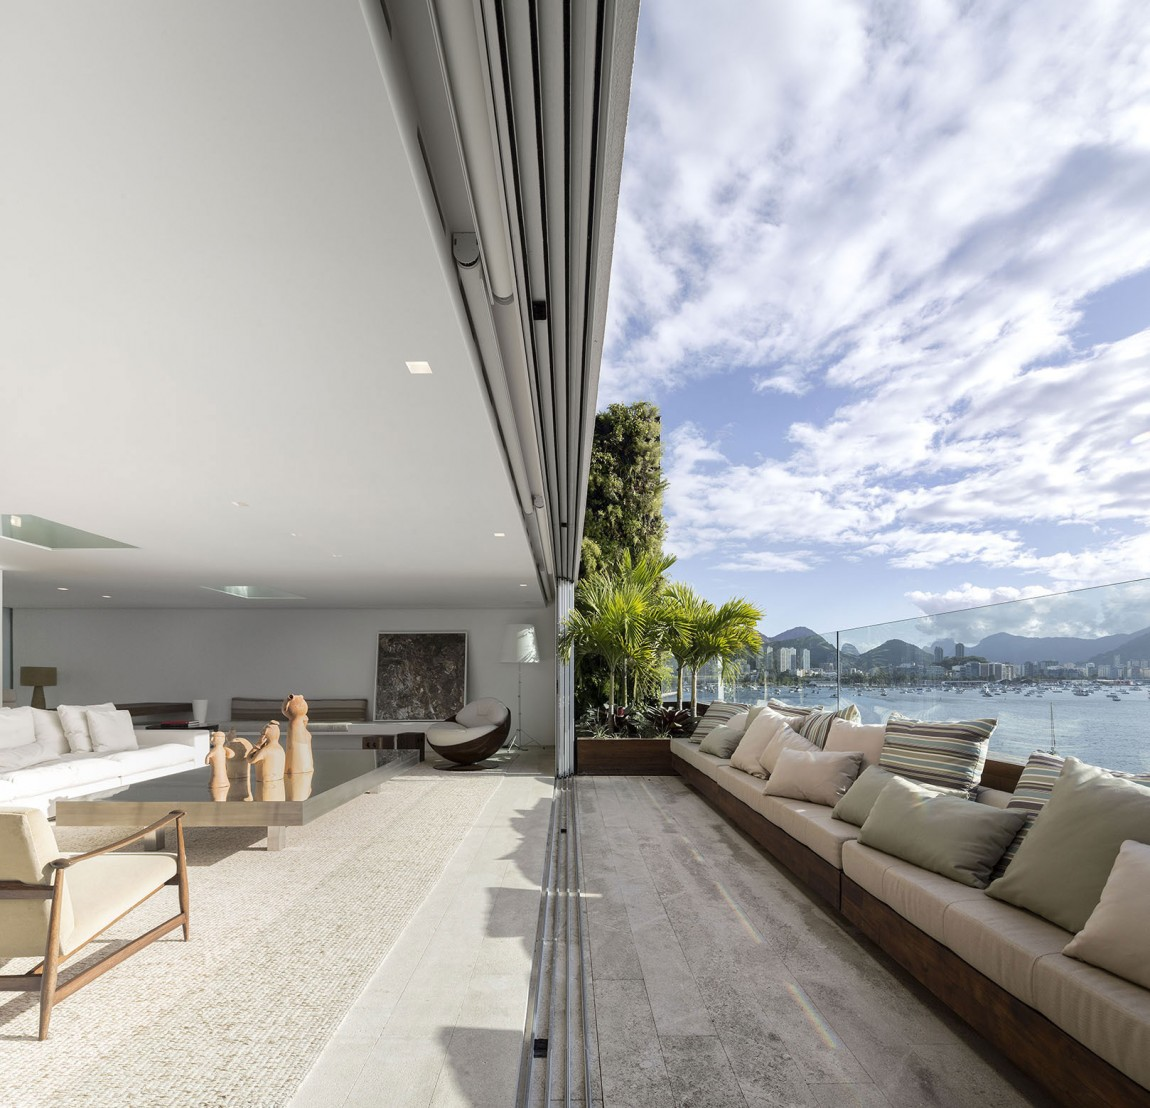 Deck of the minimalist house in Rio with ocean views